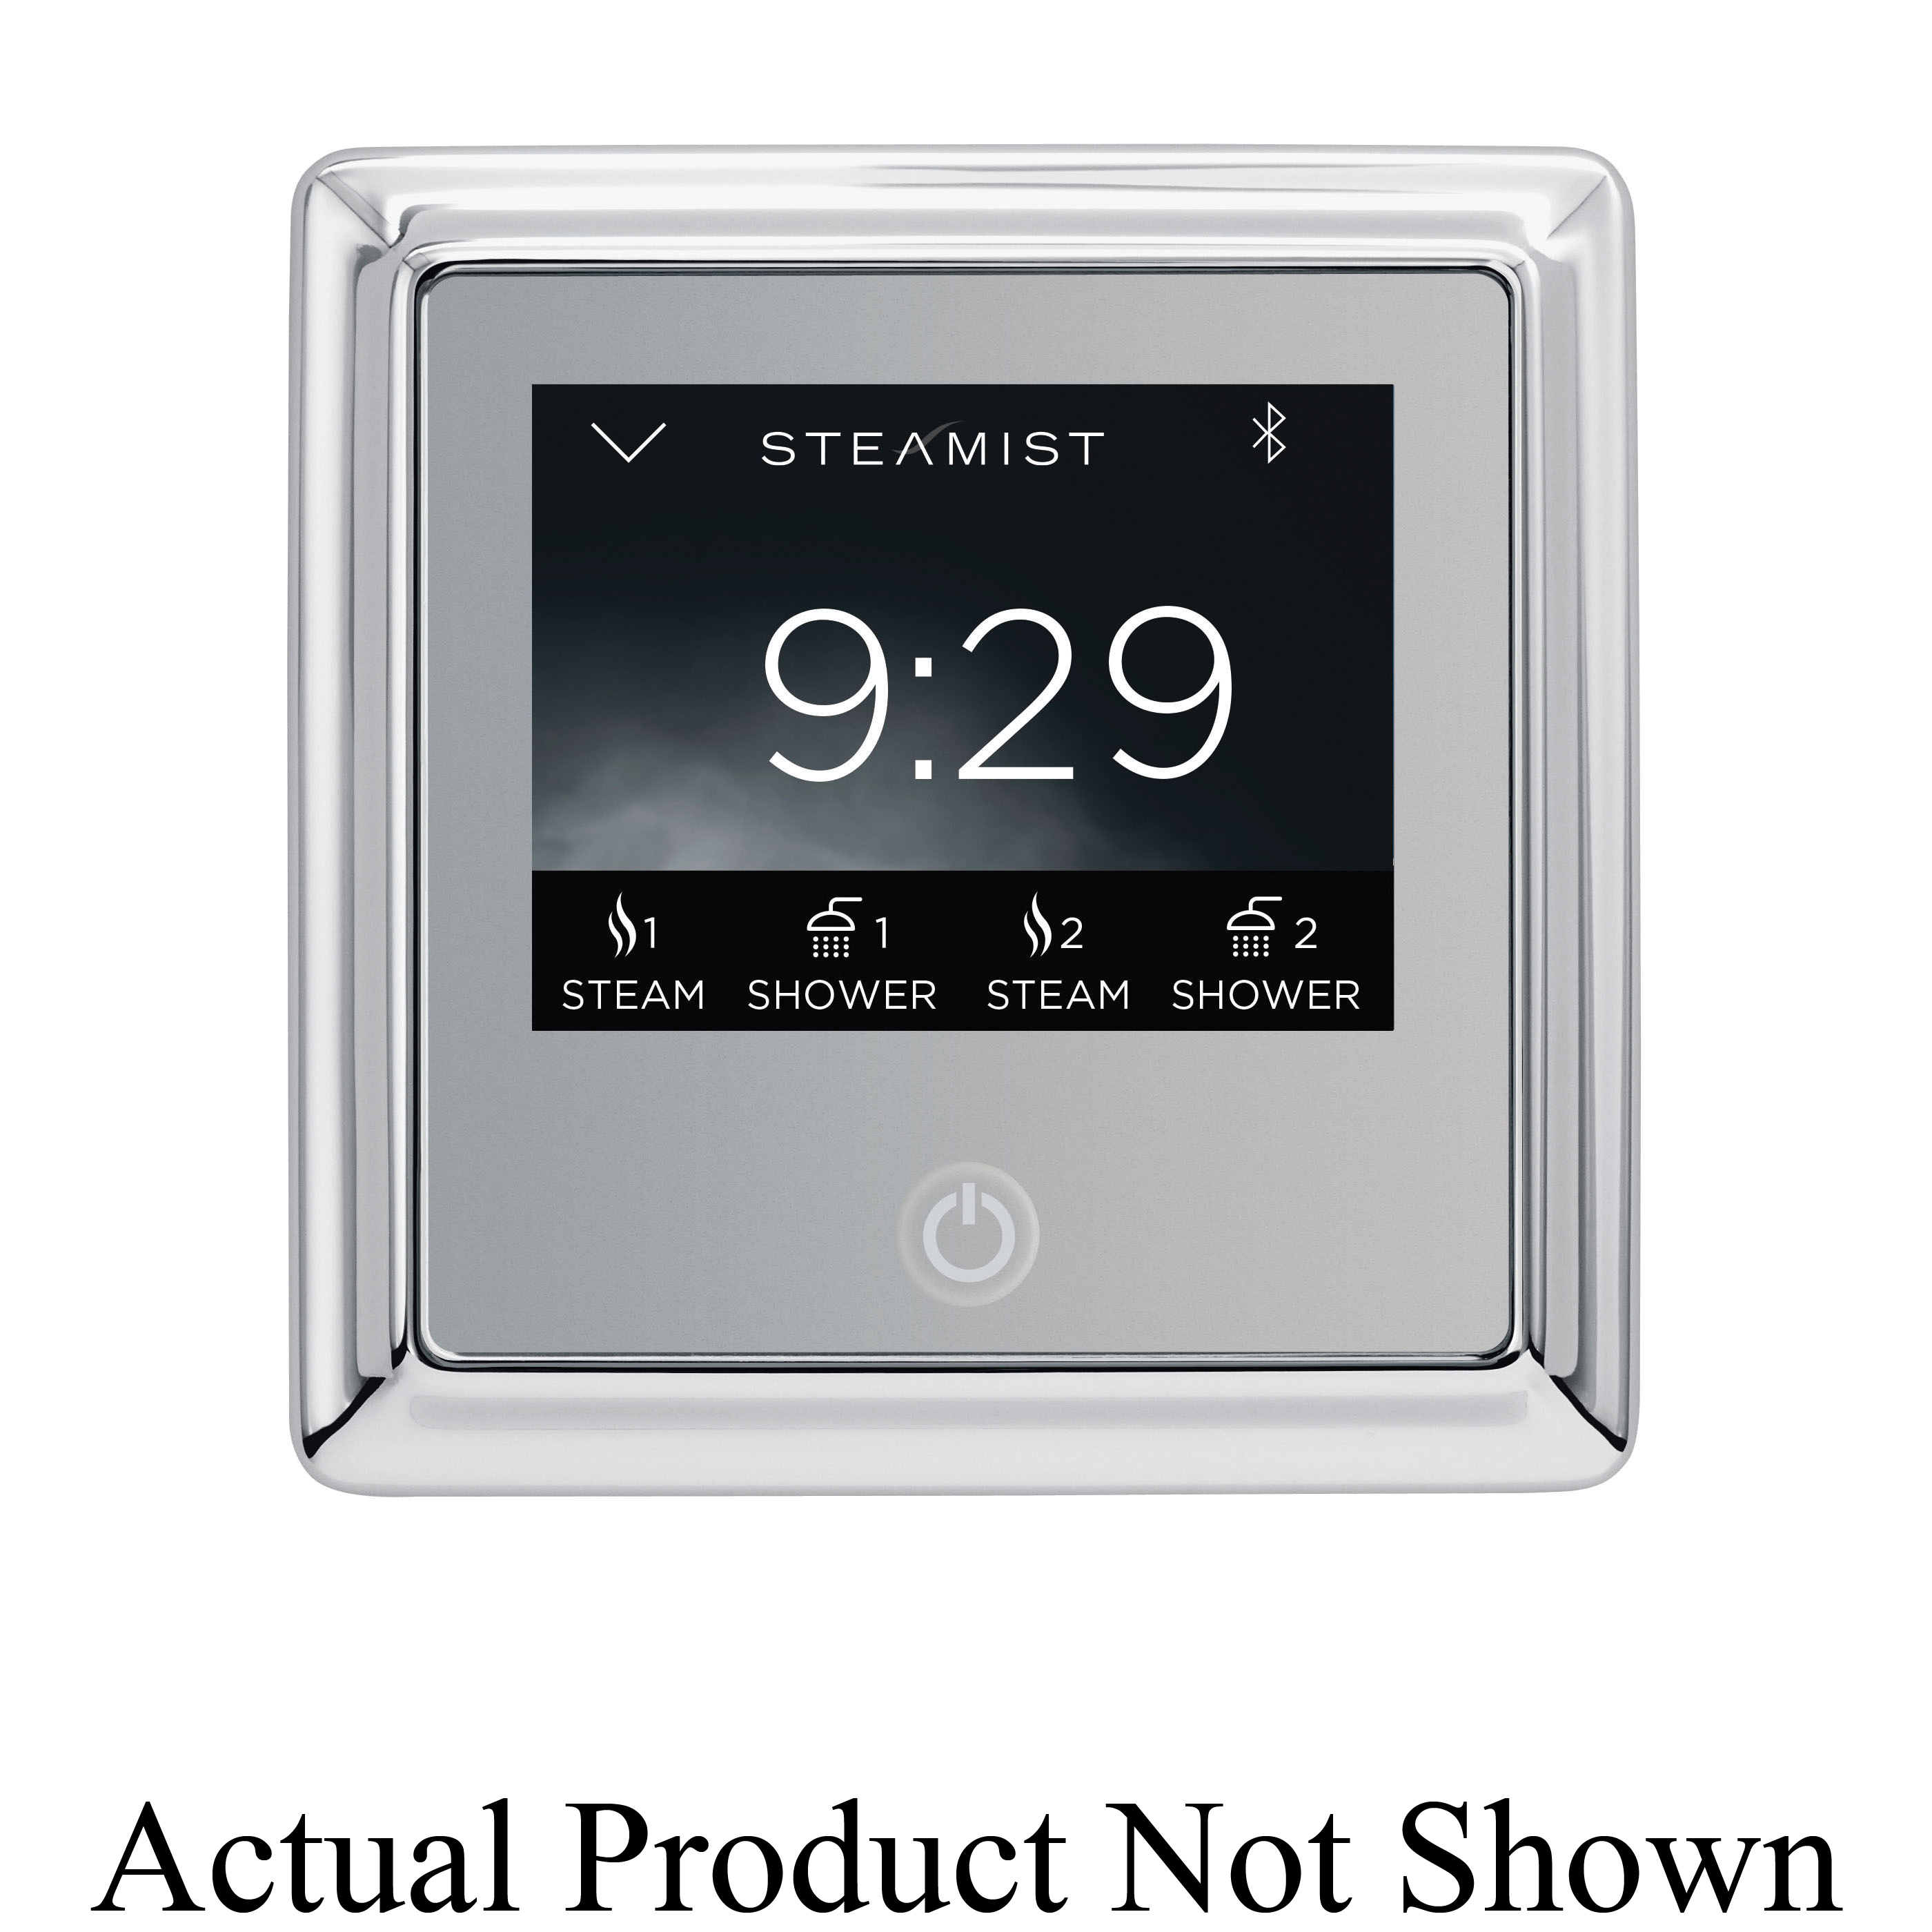 Steamist® 450T-PG TSC-450T Traditional Steambath Control With Wi-Fi, Total Sense™, Digital Display, 50 to 125 deg F, Polished Gold, For Use With: Model TSG Steam Generator, Domestic